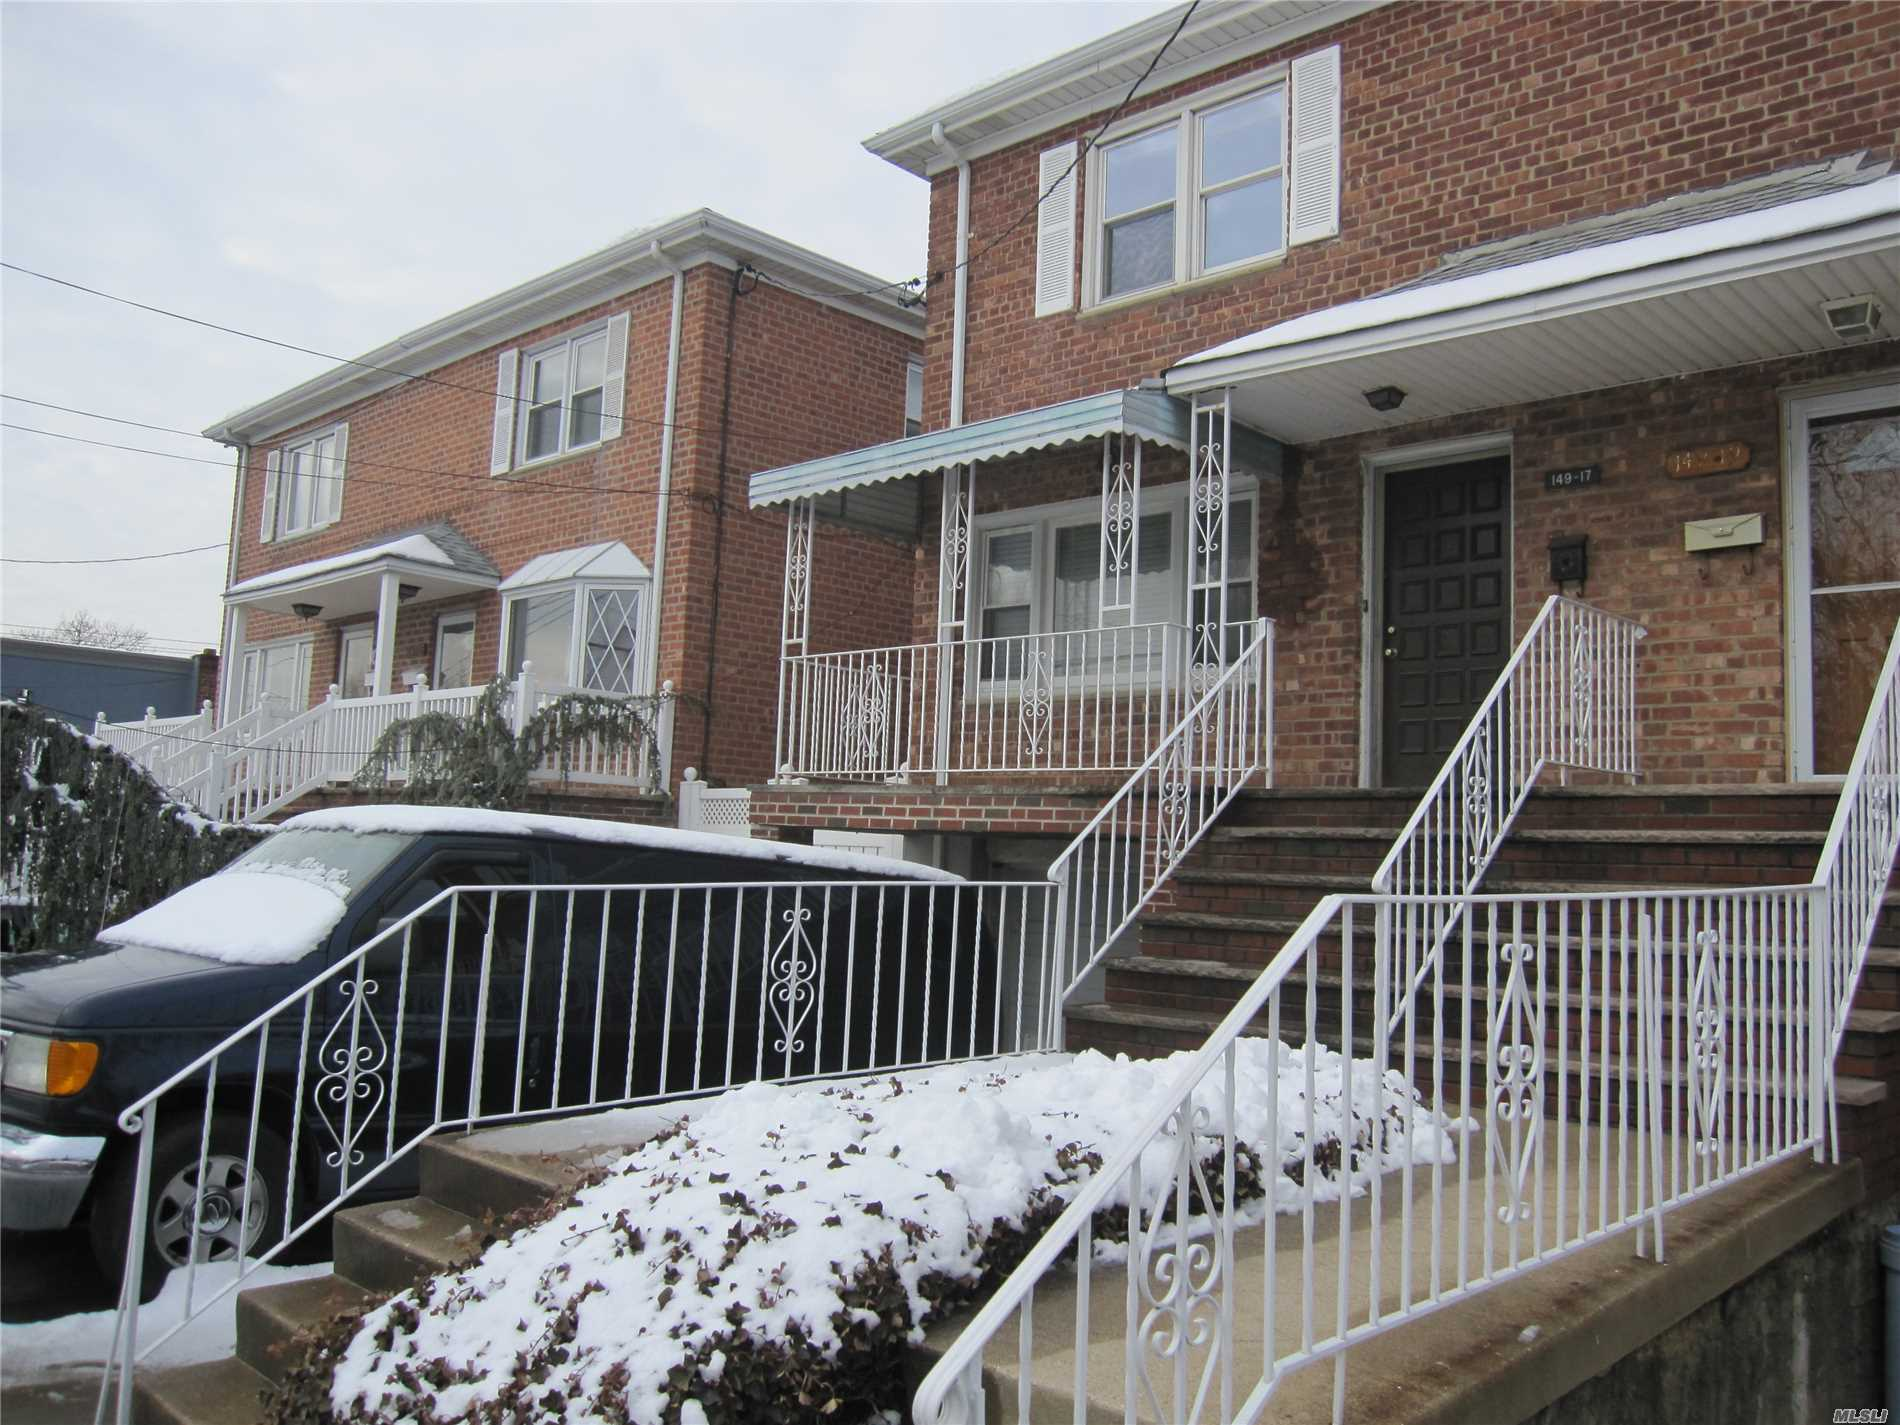 Sold In As-Is Condition. Brick 2 Story House, Needs Tlc. Close To School, Shops & Flushing Fields Park.